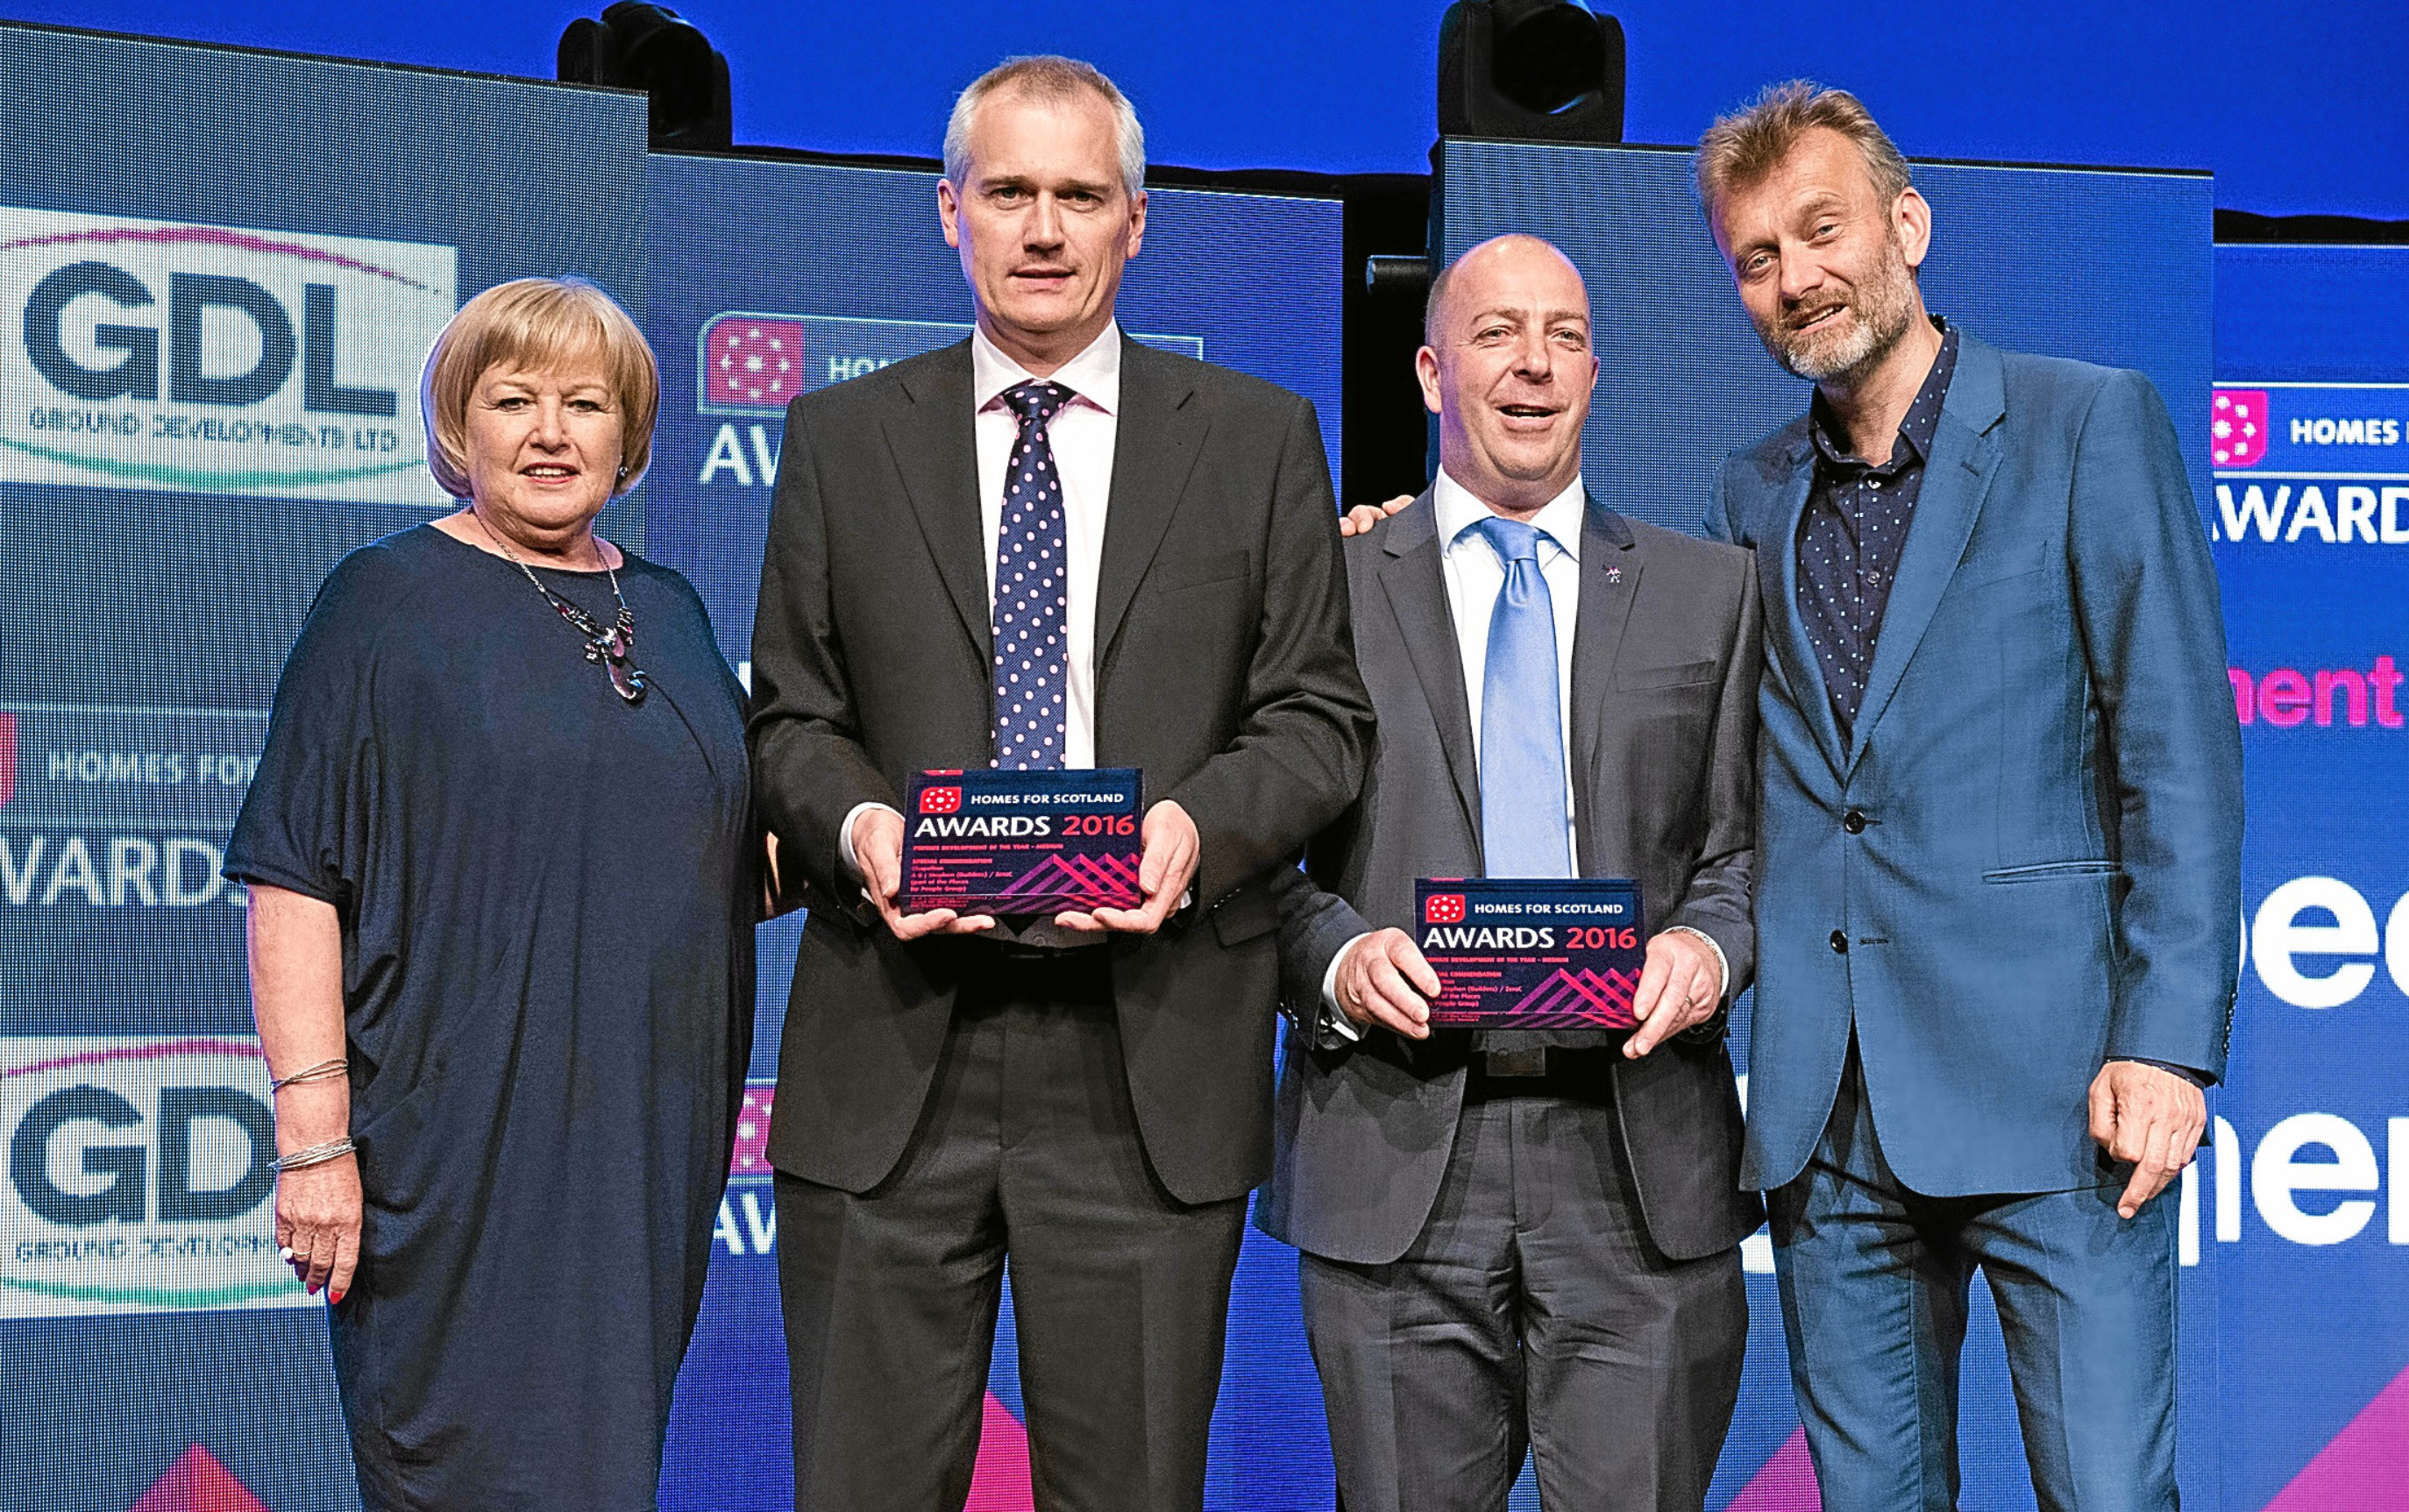 From left: Chair of the independent judging panel Kareen Davidson, John Stephen of A&J Stephen, Andy Lawson of Zero C with host Hugh Dennis.